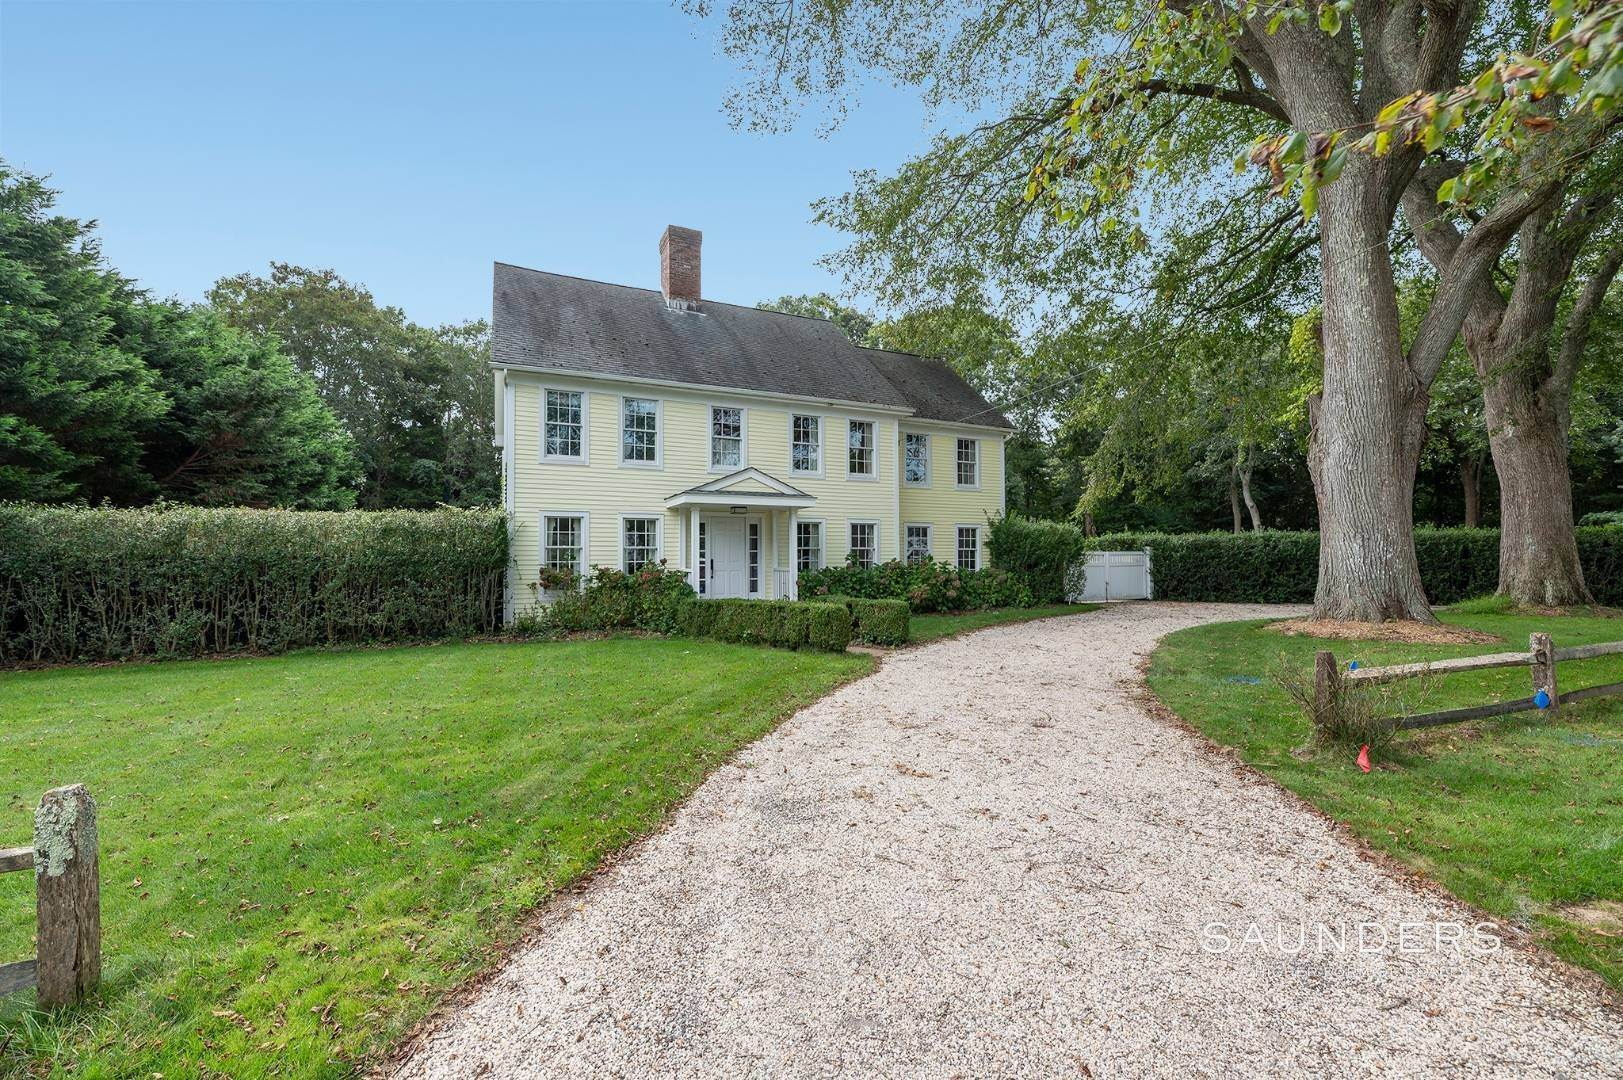 22. Single Family Homes for Sale at East Hampton Village Traditional South Of The Highway 21 Buckskill Road, East Hampton, East Hampton Town, NY 11937